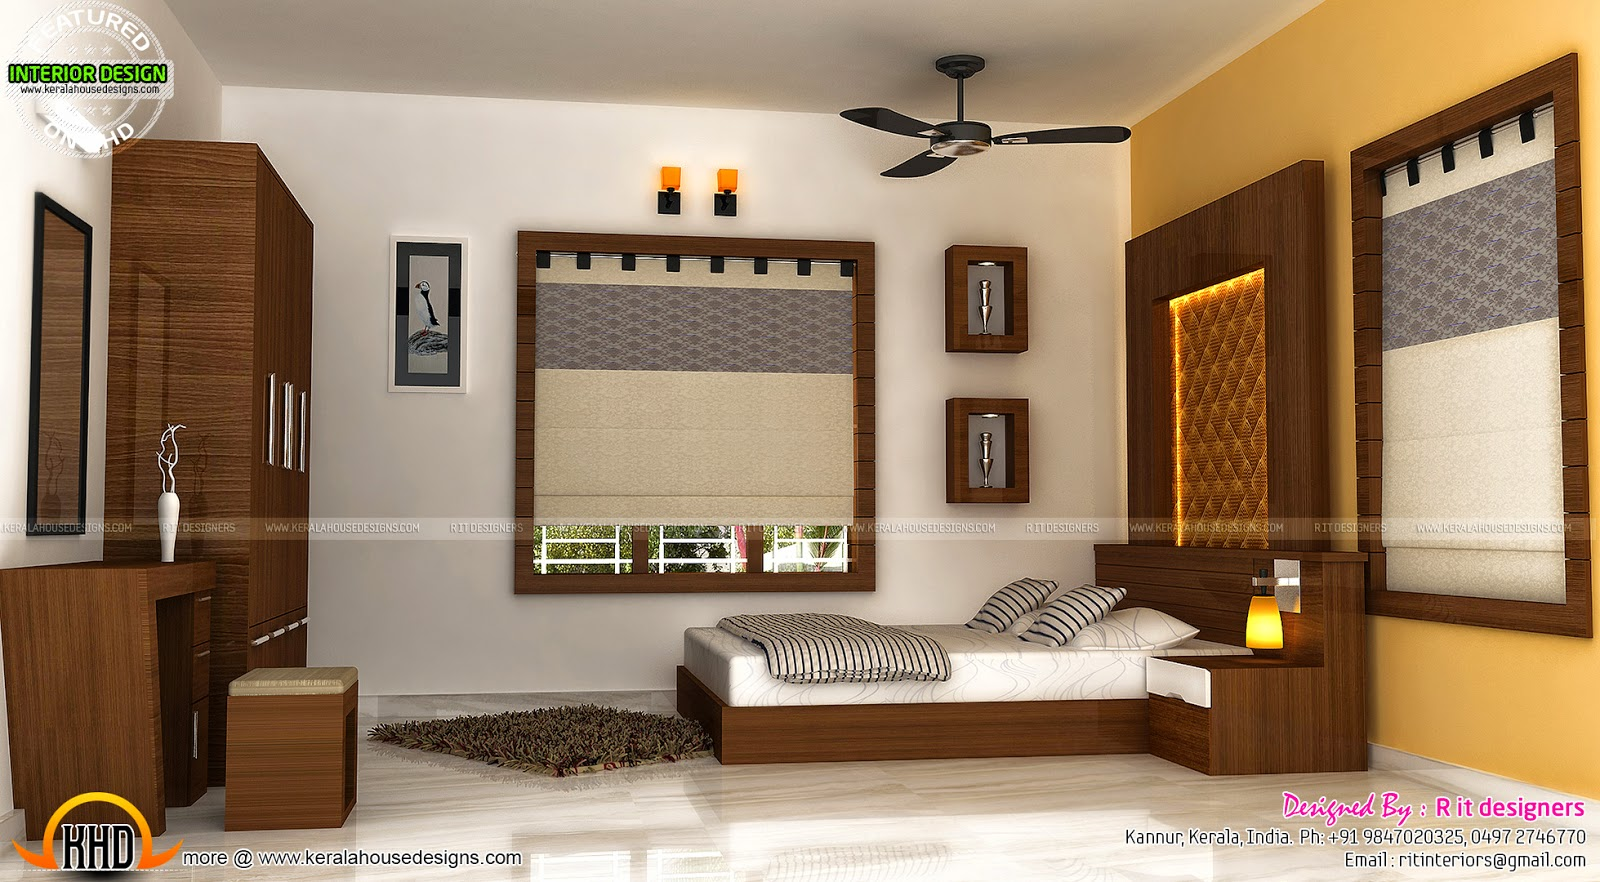 Staircase bedroom dining interiors kerala home design for How to design a house interior